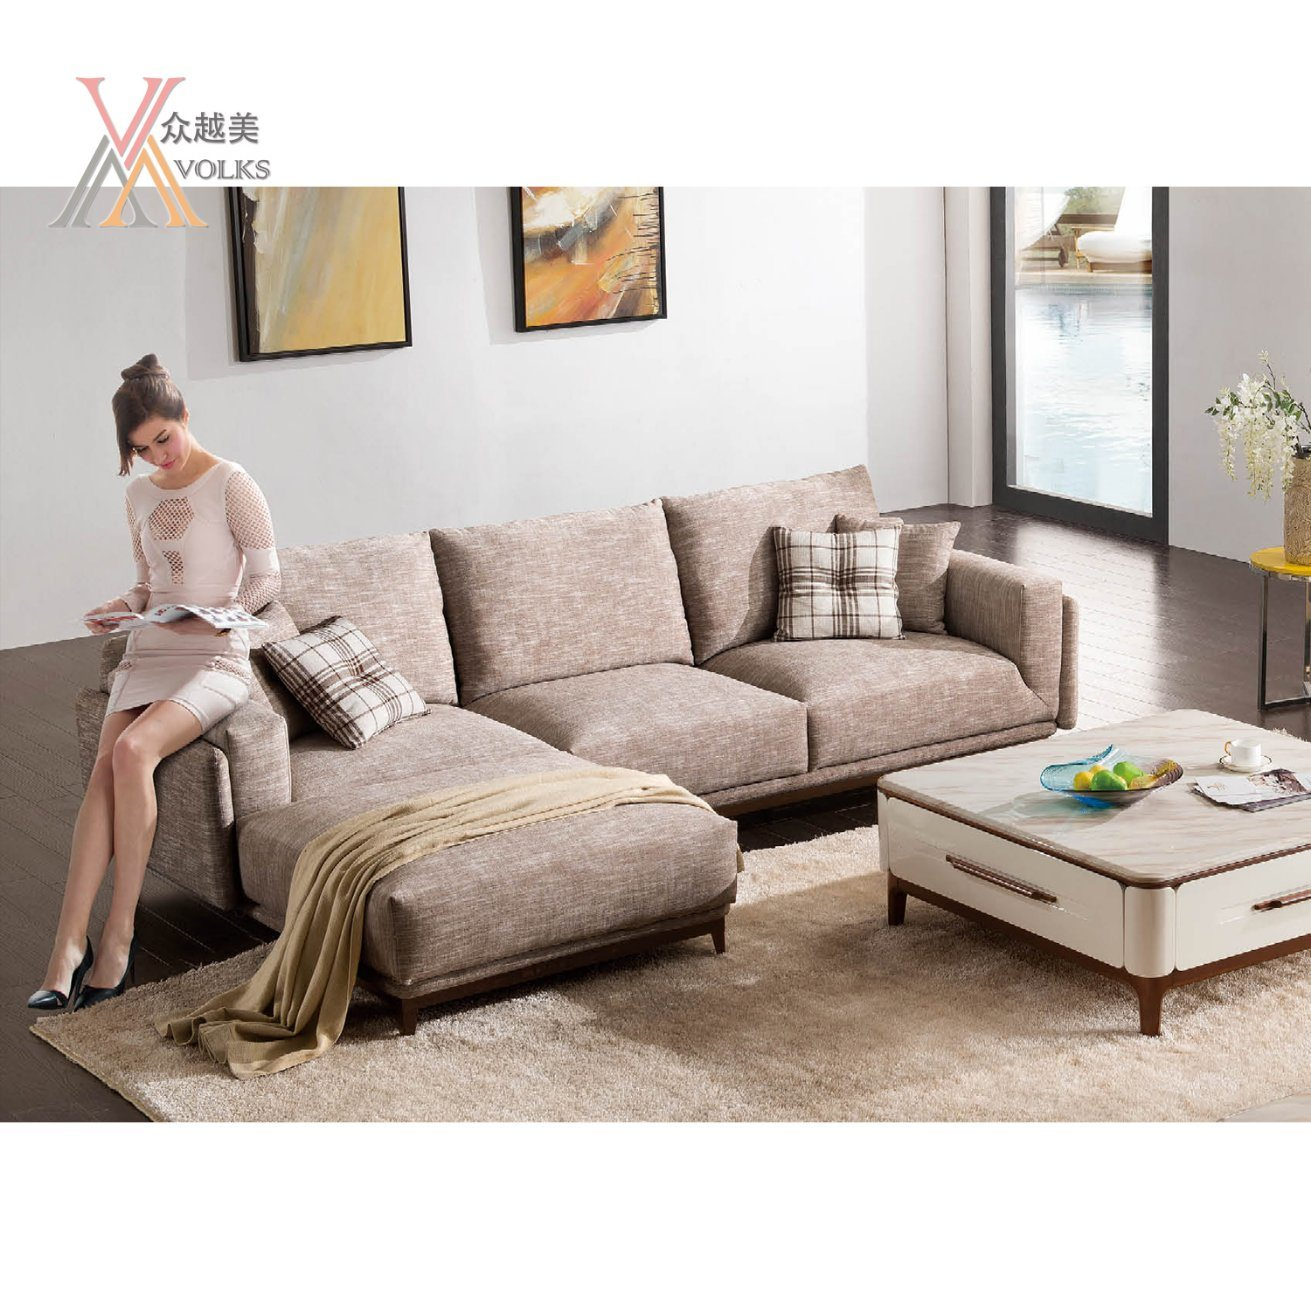 china sofa fabric back to checked comfortable set with